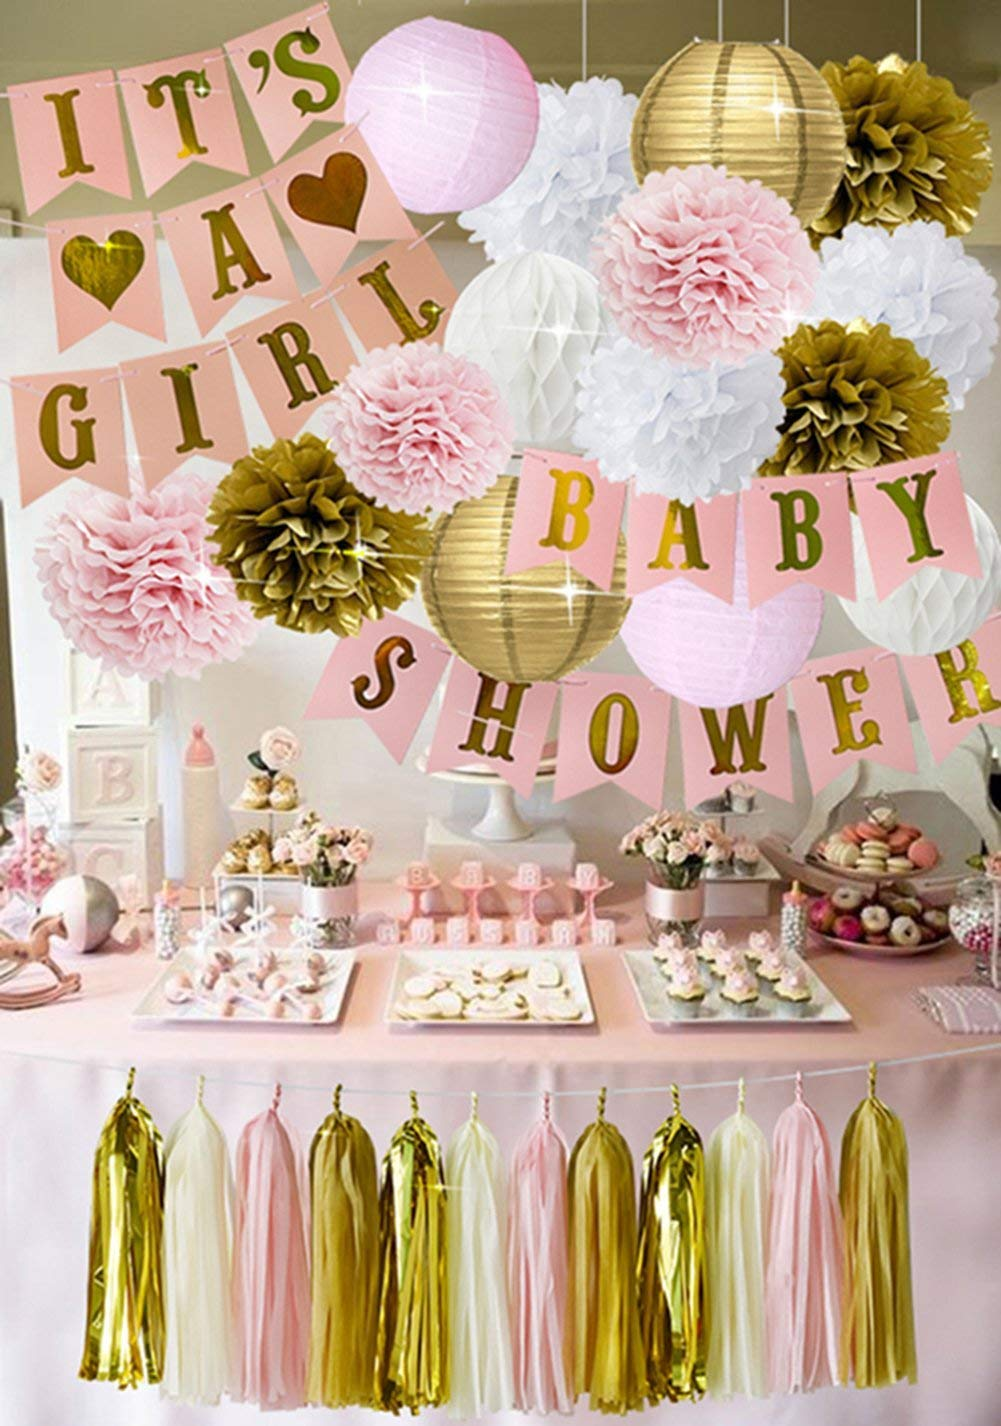 HappyField Baby Shower Decorations for Girl It's A Girl Baby Shower Banner Tissue Pom Poms Paper Lanterns Paper Honeycomb Balls Tissue Paper Tassel Party Decorations (Pink and Gold)